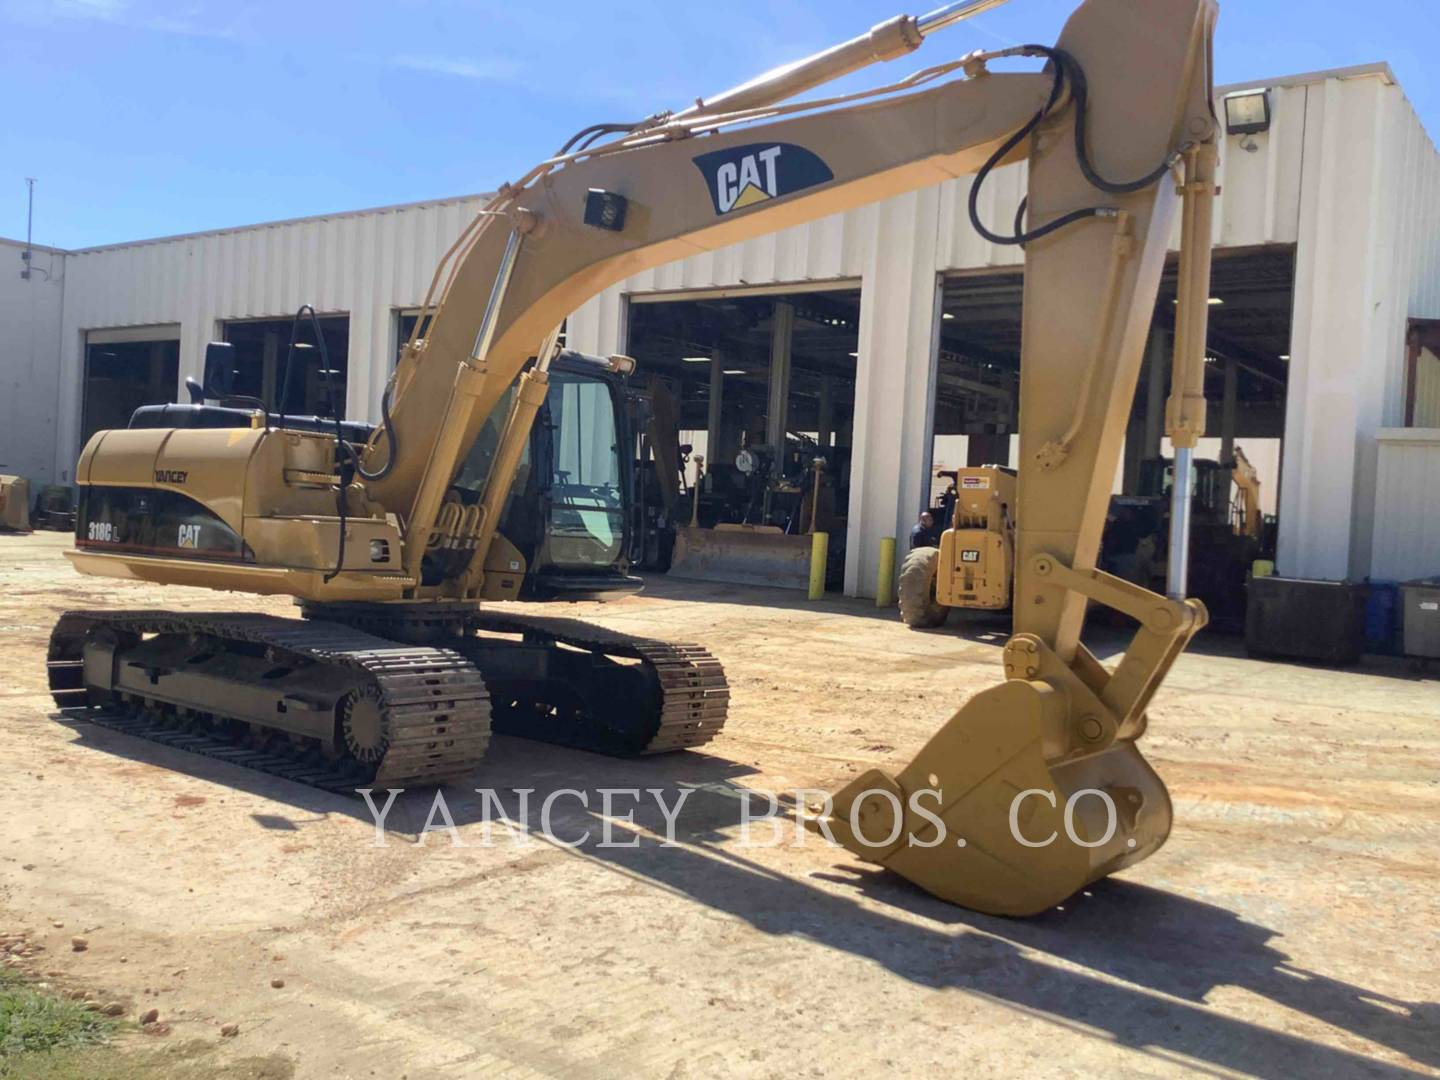 2007 - CATERPILLAR - 318CL